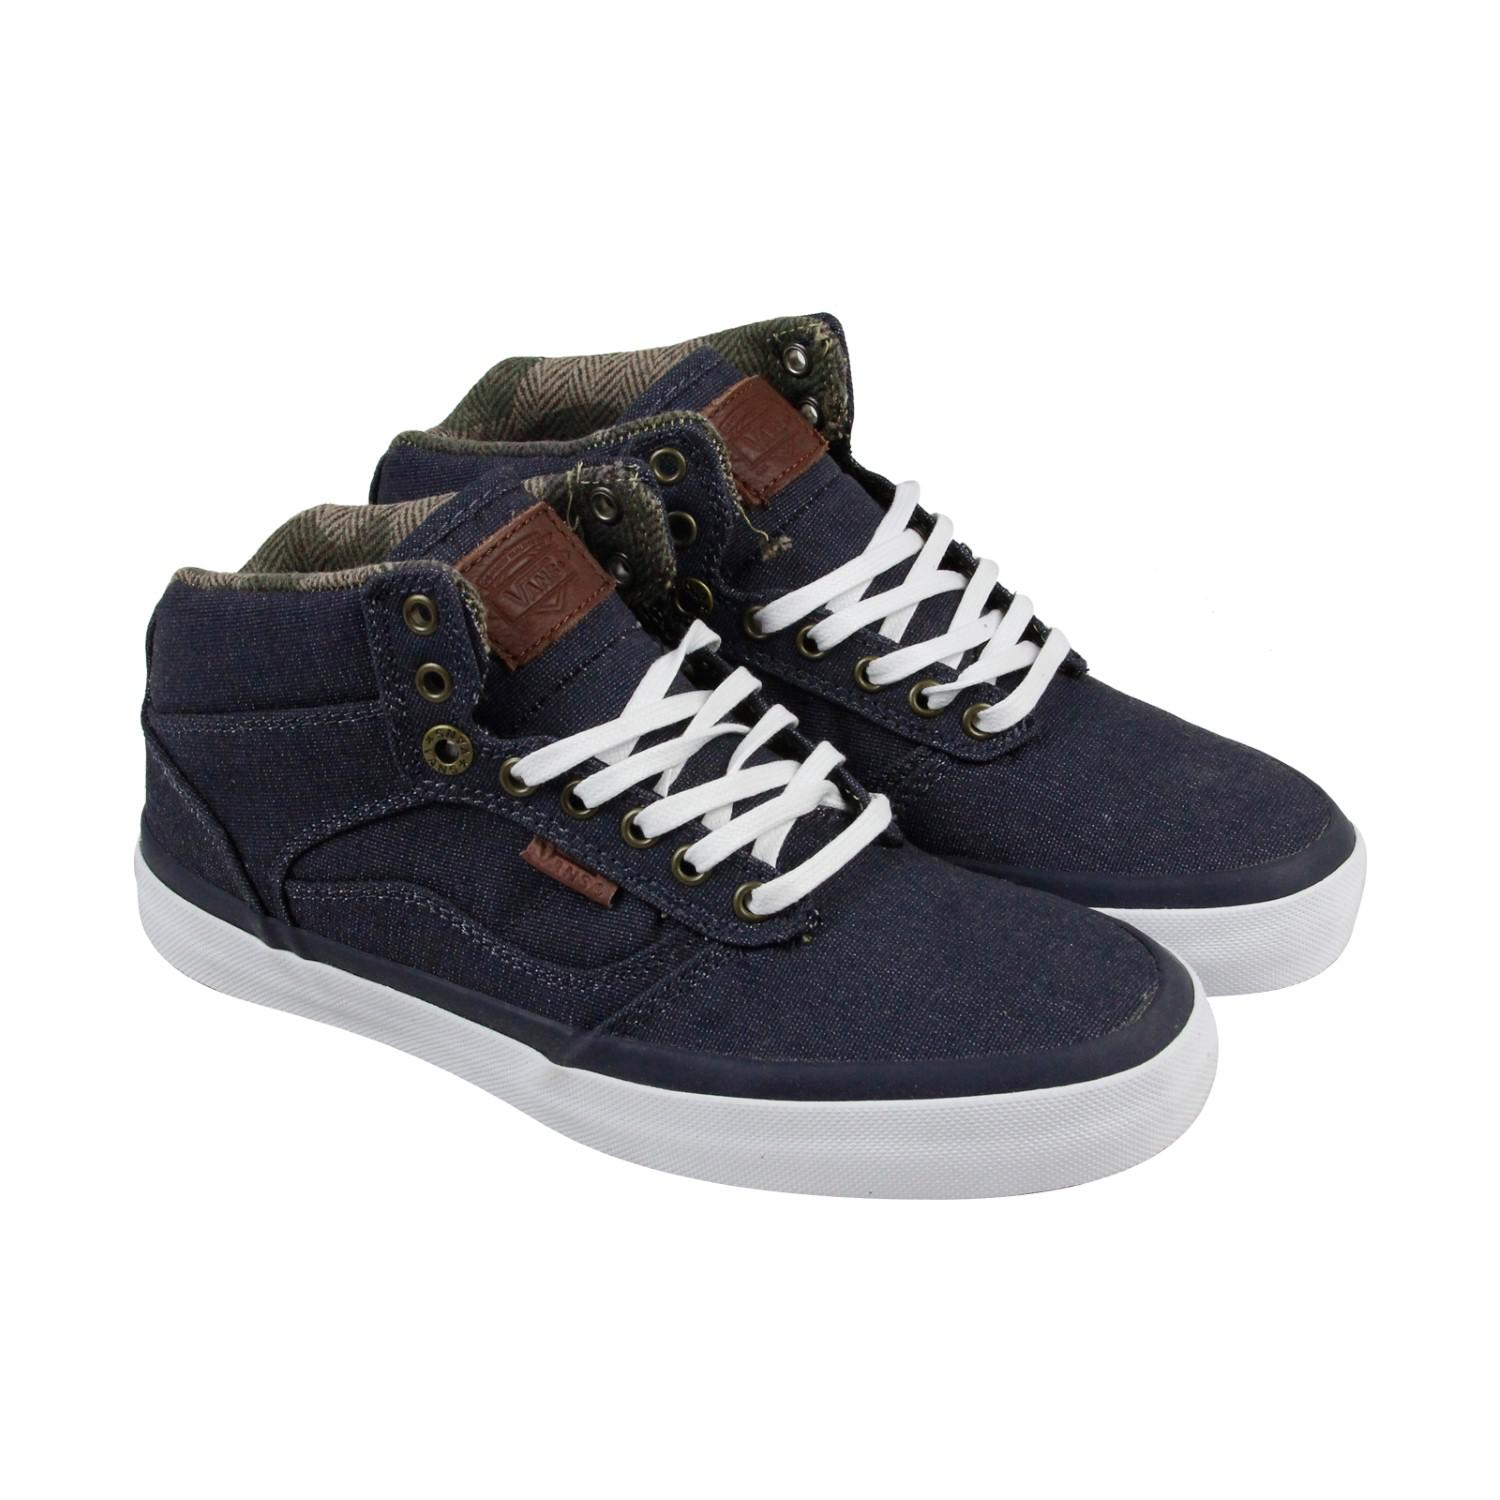 6426958b98 Lyst - Vans Bedford Suiting Parisian Night White Mens High Top ...